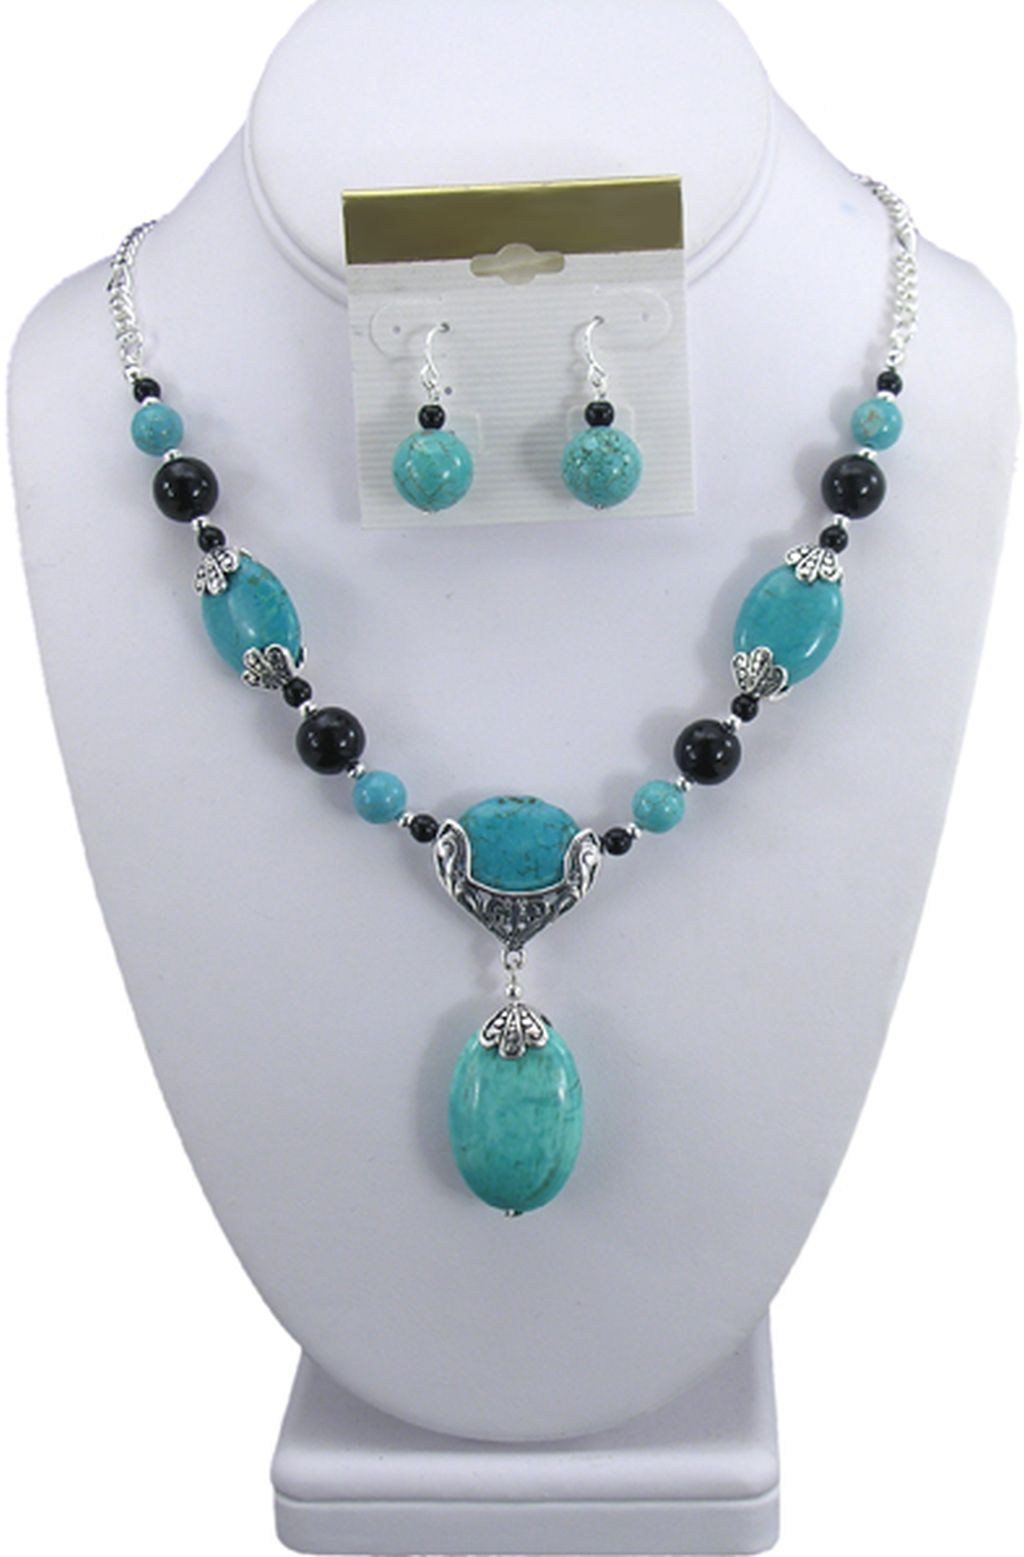 Classy Style Set of Necklace & Earrings, Turquoise Genuine Stones, Pendant, Beads, Sterling Silver Plated, Anti-allergic Jewelry